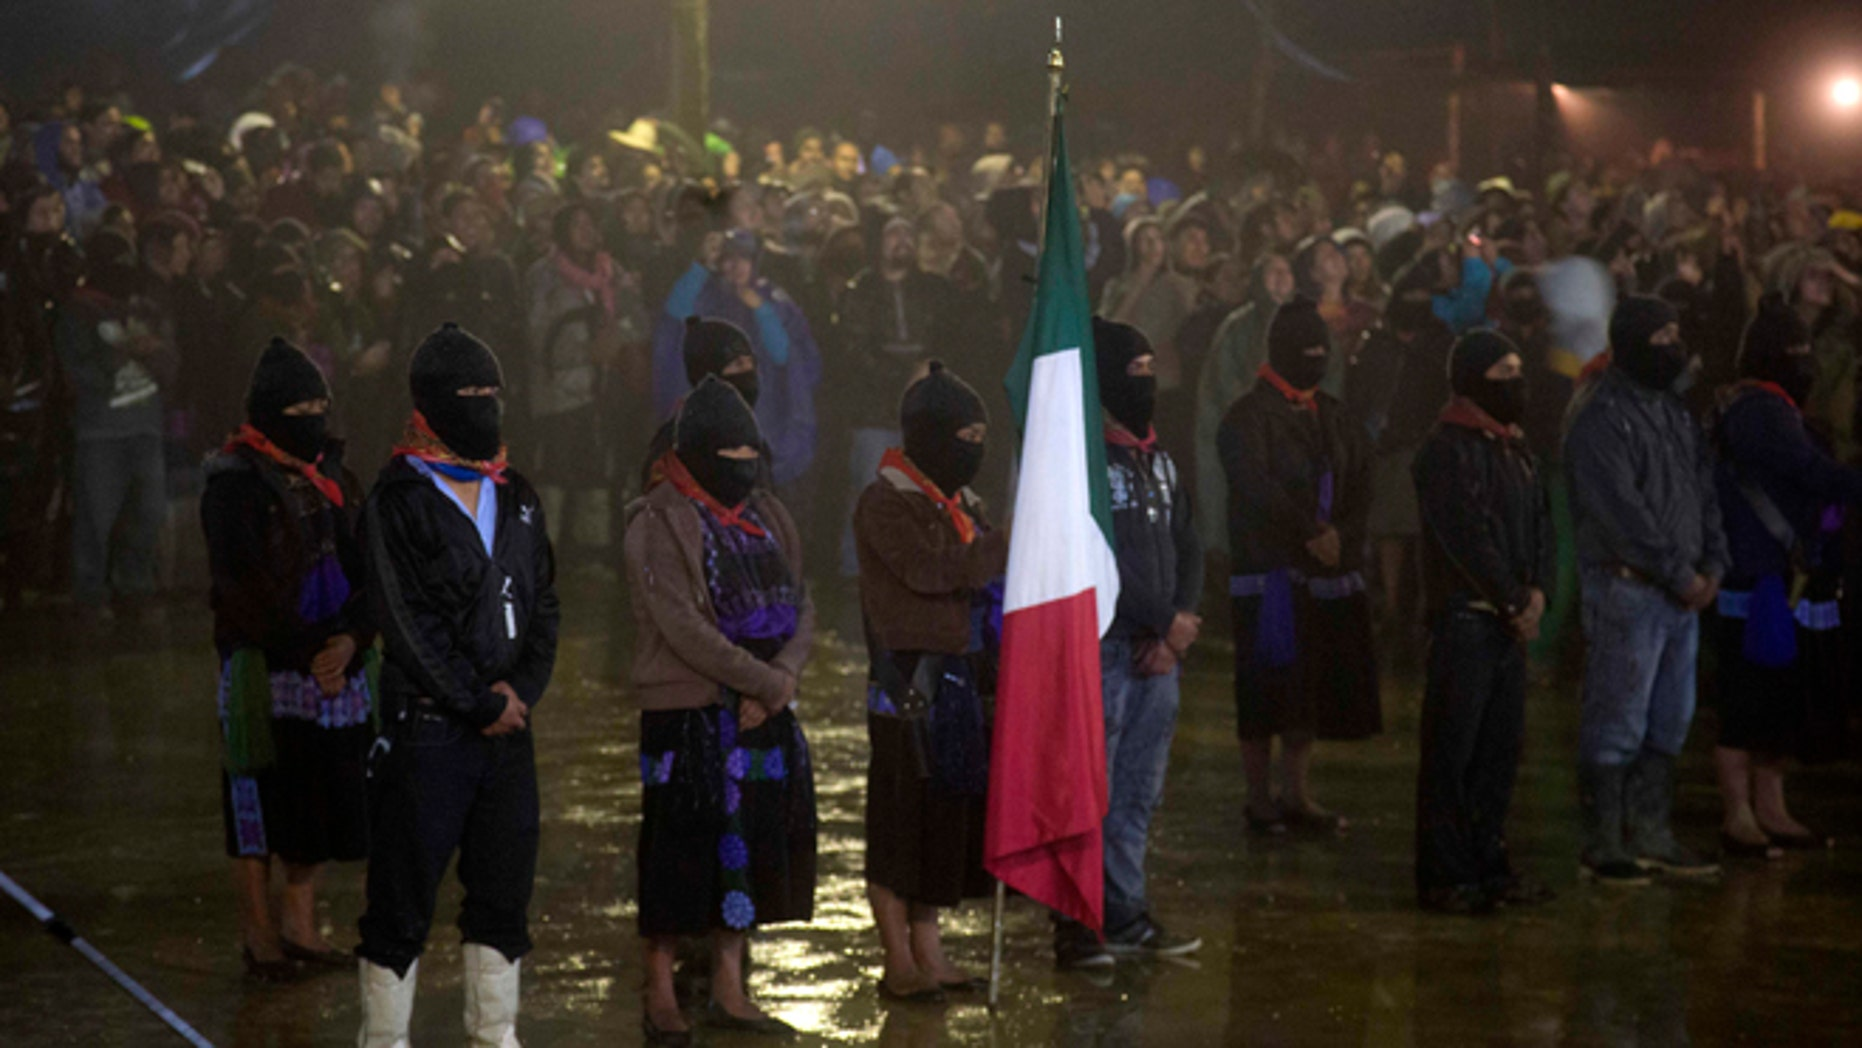 Members of the EZLN mark the 20th anniversary of the Zapatista uprising in Chiapas, Mexico, on Dec. 31, 2013.